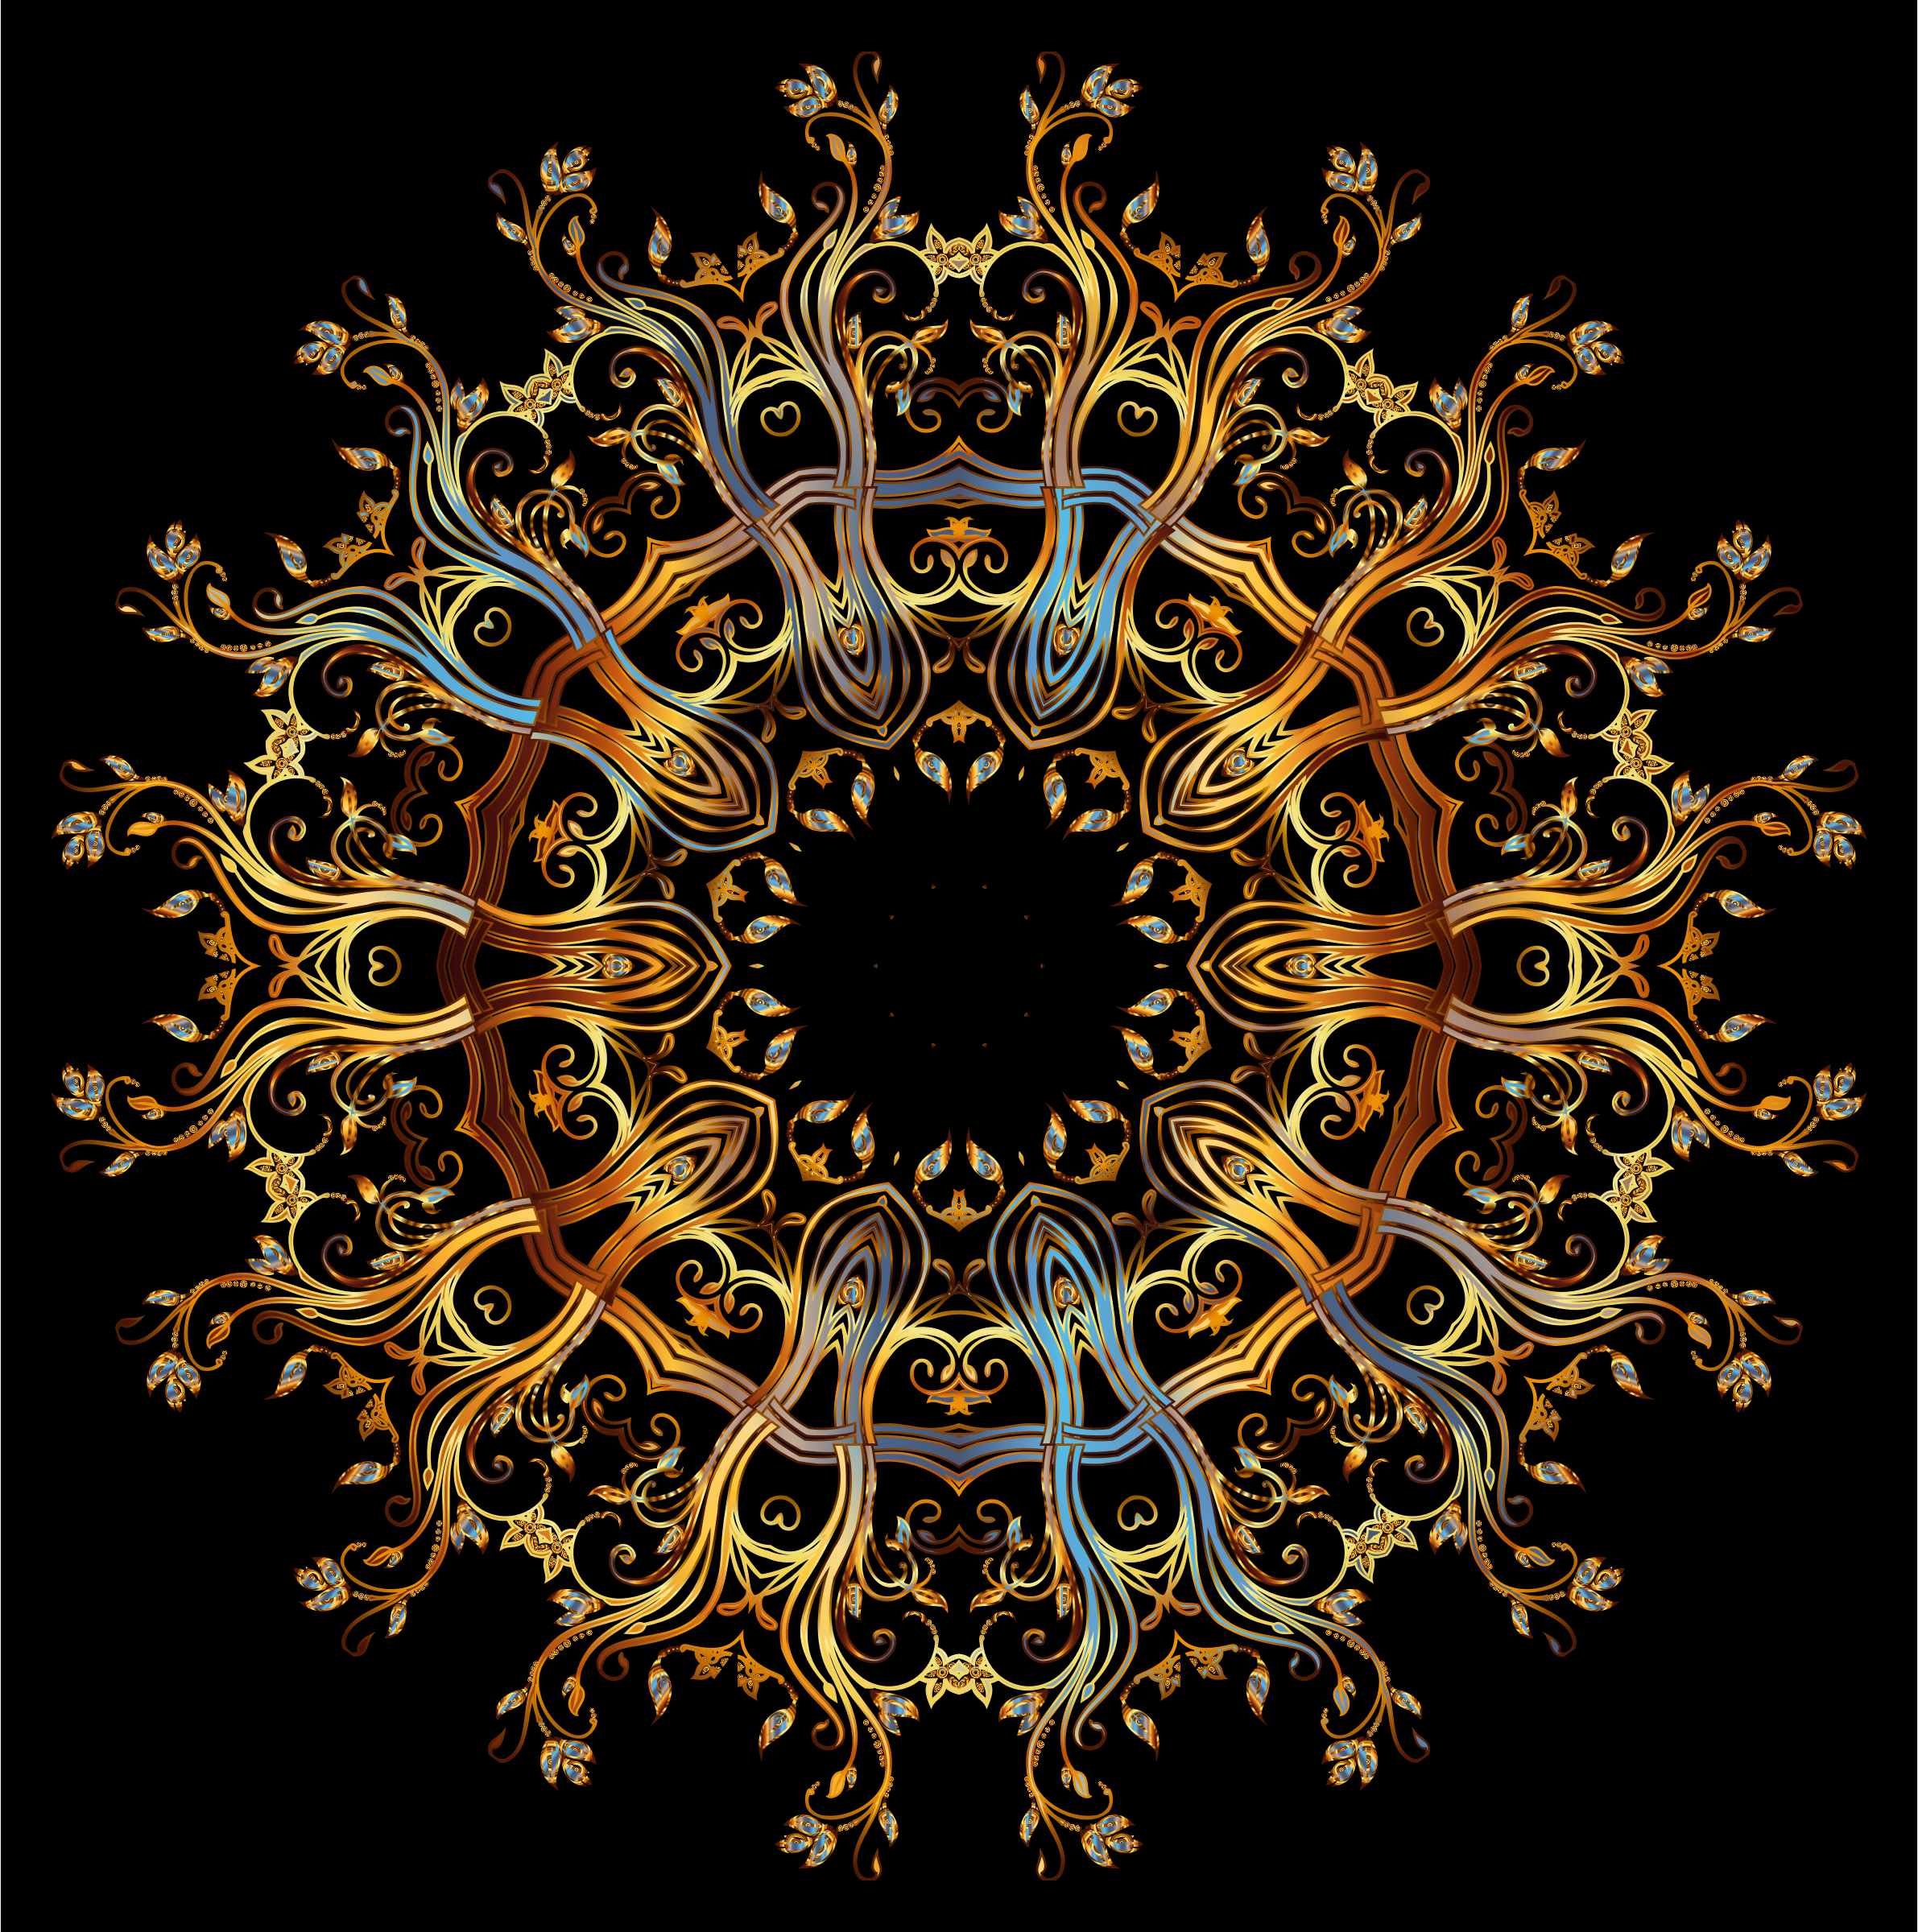 Chromatic Gold Flourish Ornament 3 by GDJ